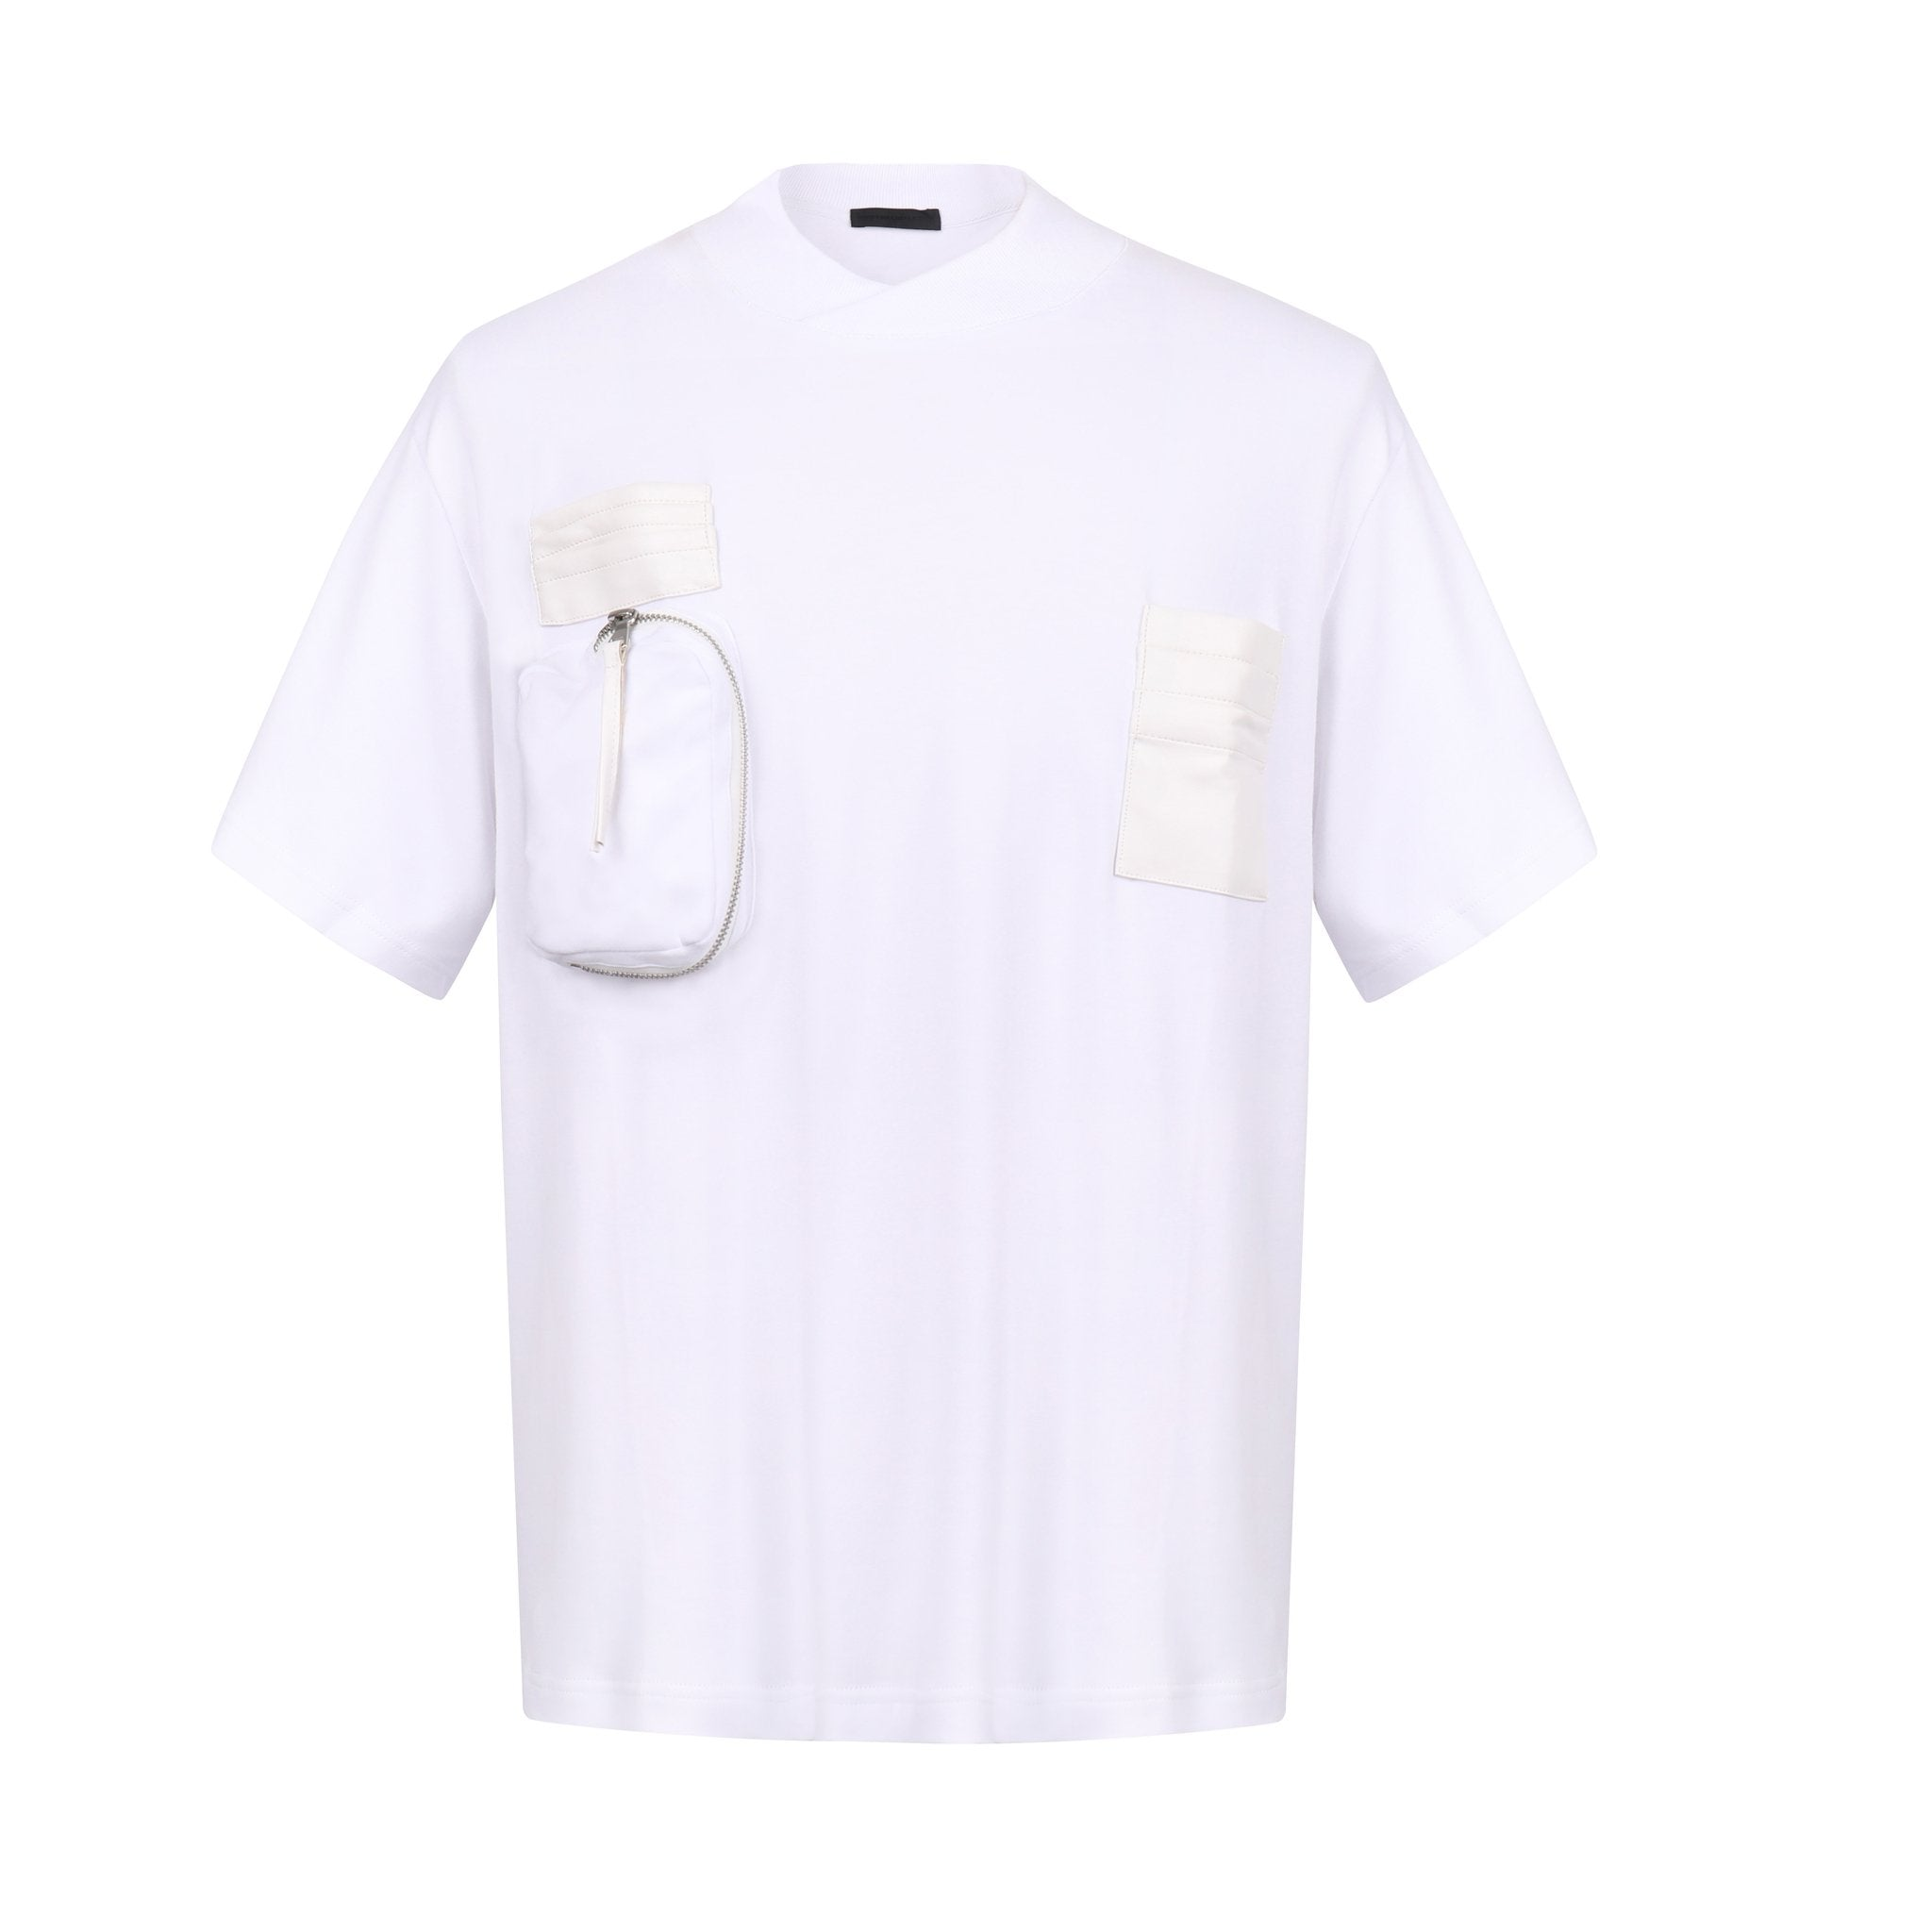 ONOFFON White Card Holder Tee | MADA IN CHINA